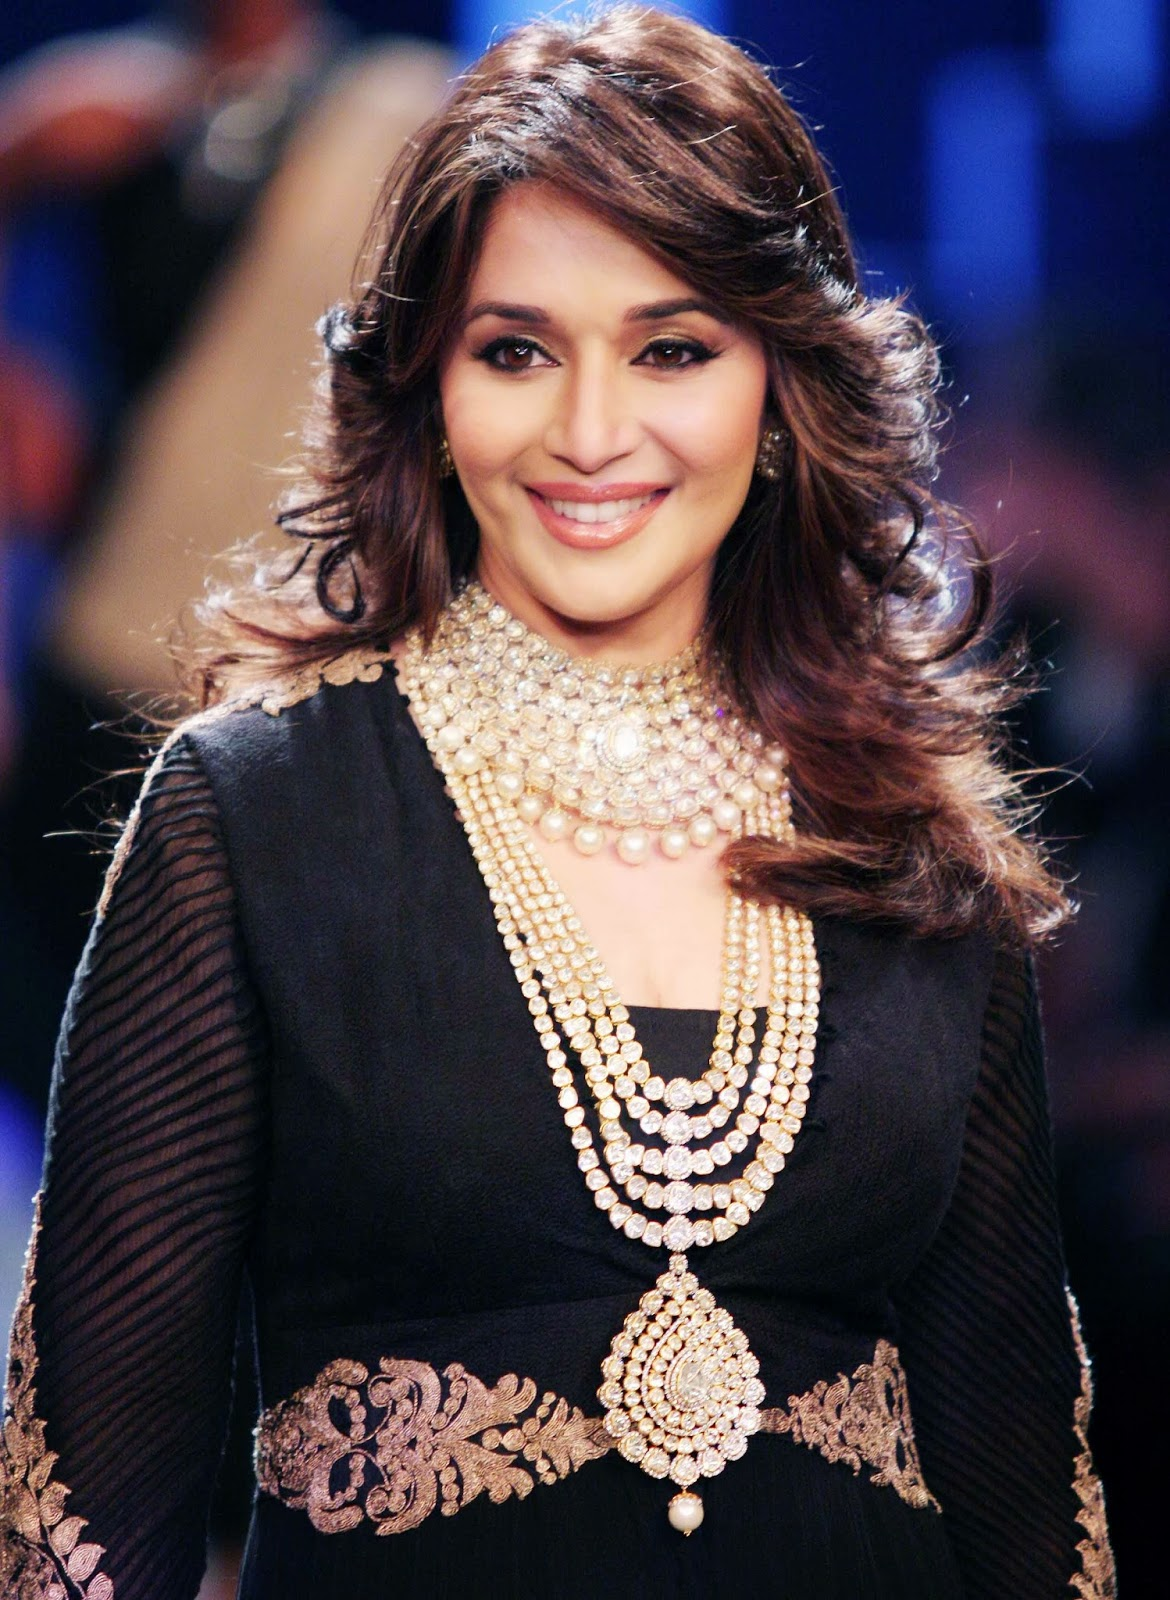 All Wallpapers Pixz Images Pics 1080p: Madhuri Dixit hot sexy HD ...